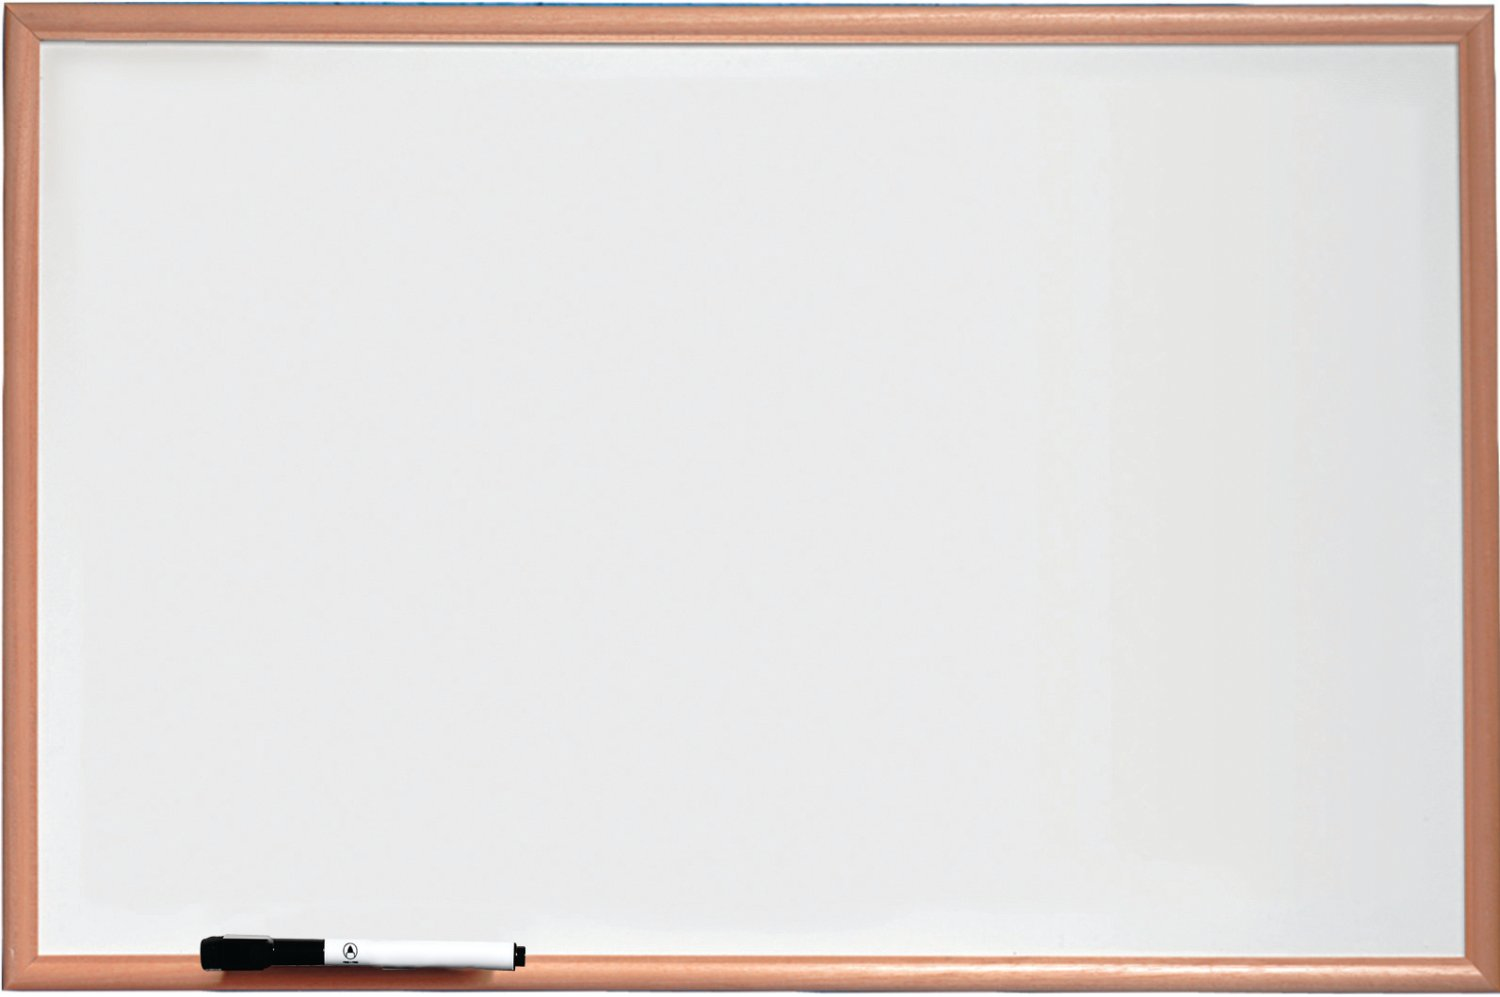 NOBO 1905200 BASIC MELAMINE NON MAGNETIC WHITEBOARD 900X600MM WITH PINE TRIM